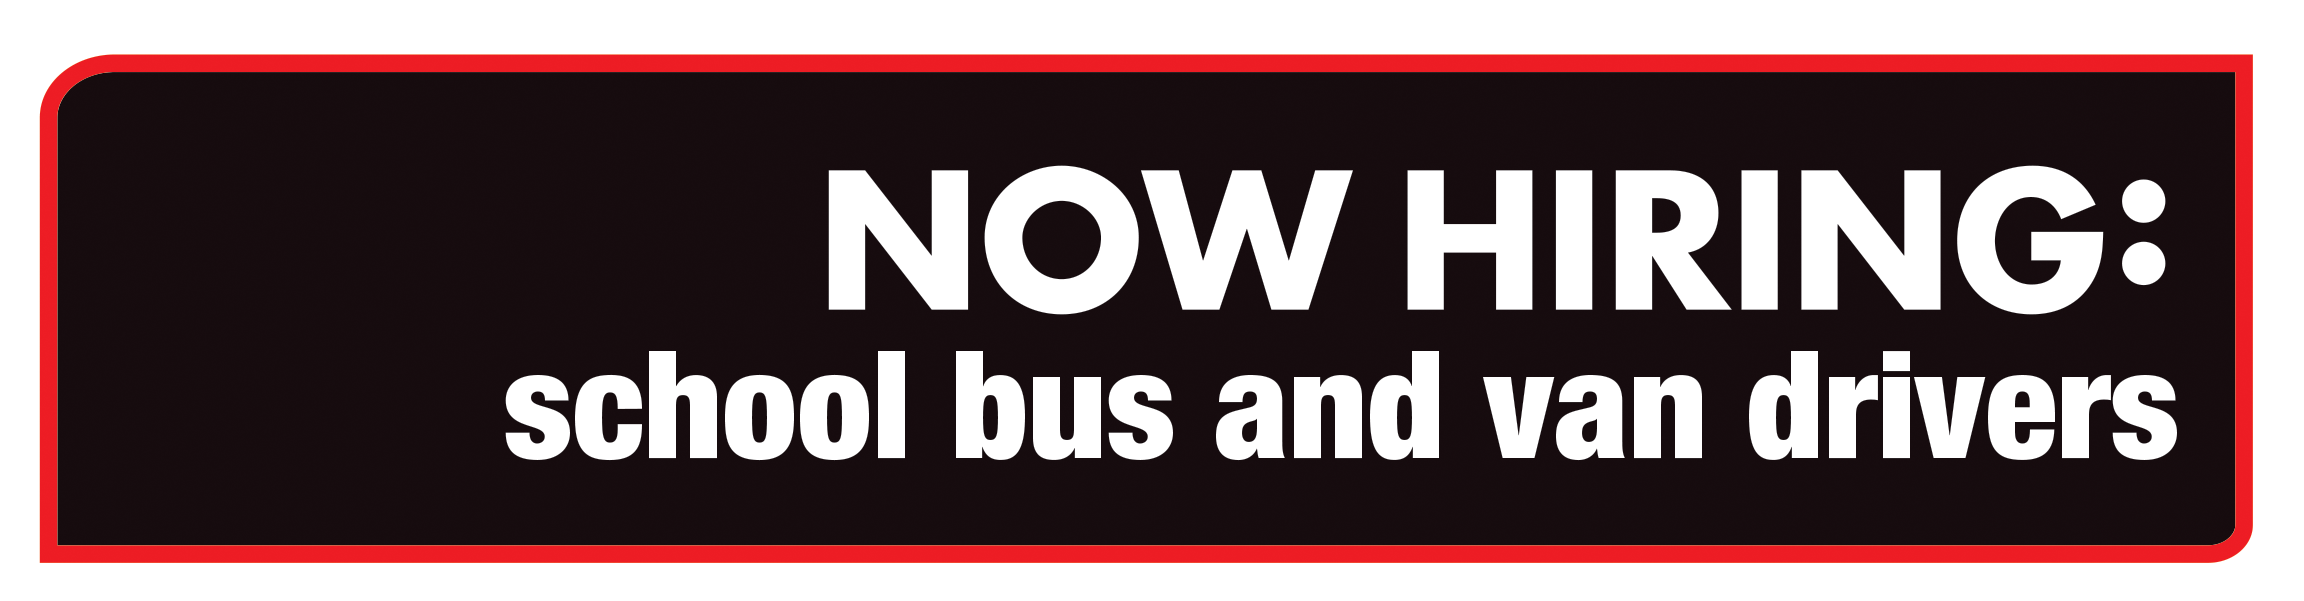 Now Hiring School Bus and Van Drivers!